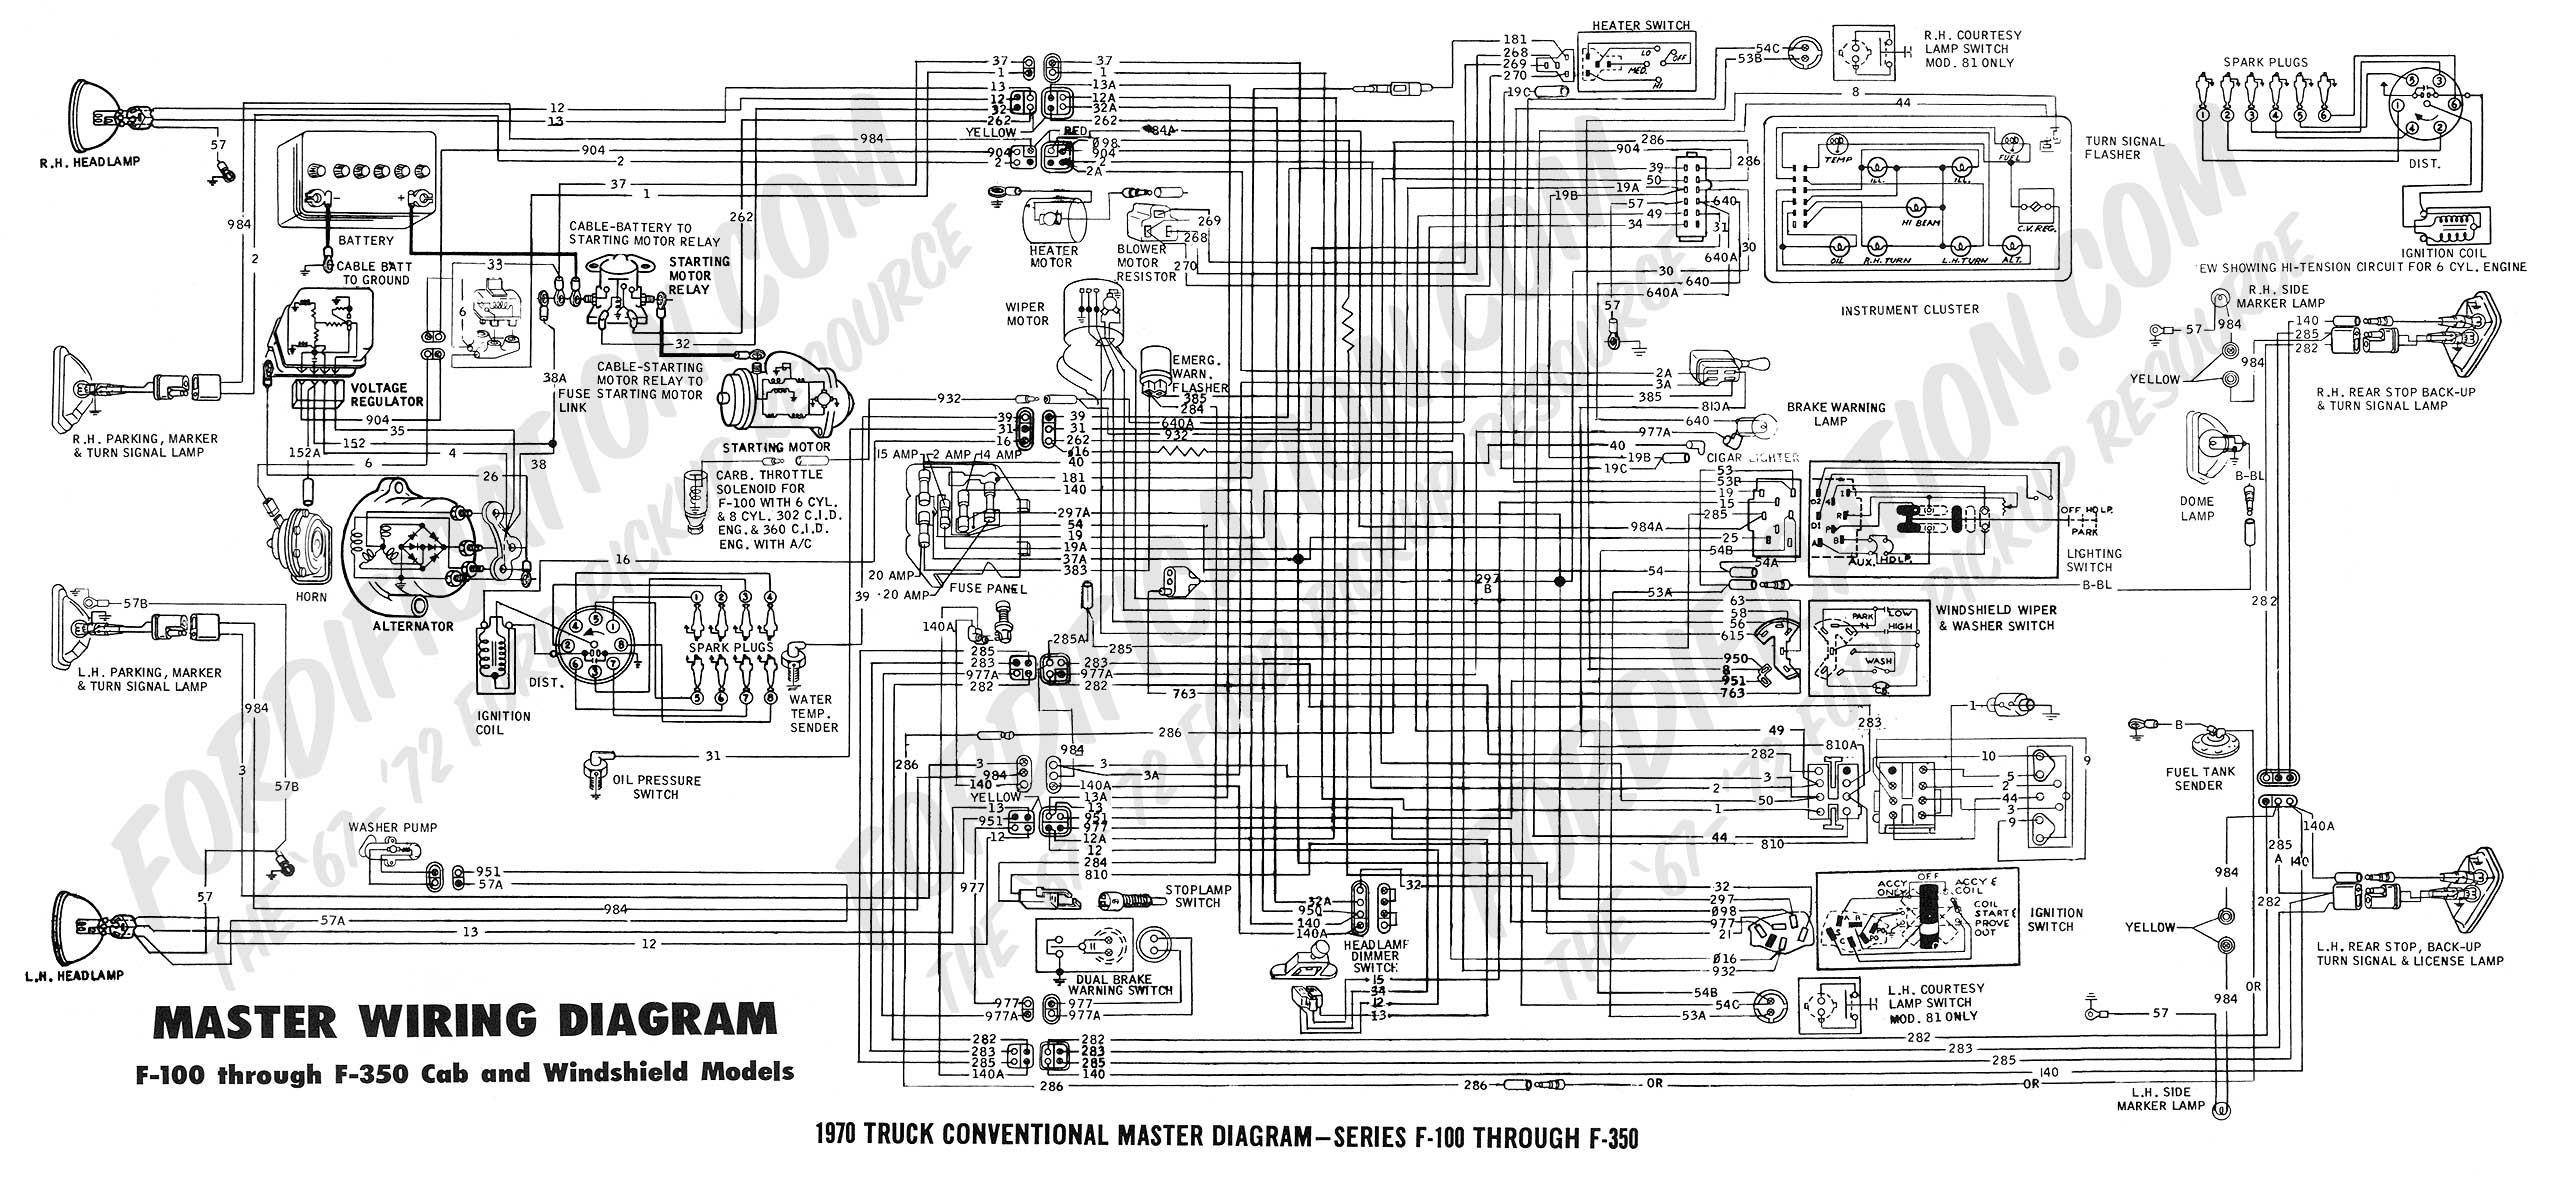 2015 ford f550 wiring diagram 2000 f150 horn wiring diagram 2000 wiring diagrams